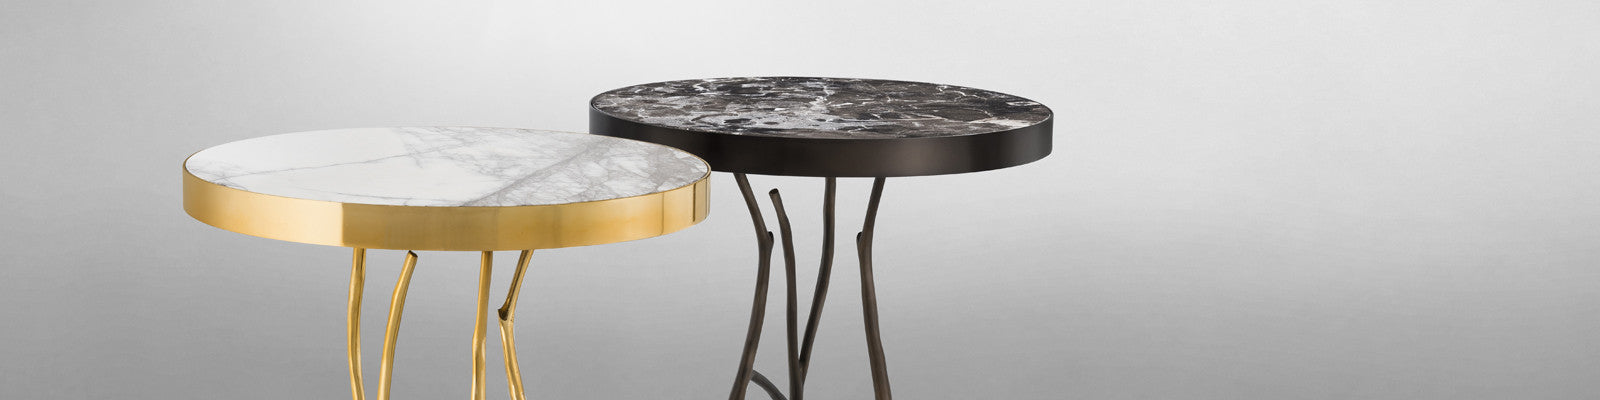 Eichholtz Side Tables | OROA - Modernized Classic Furniture